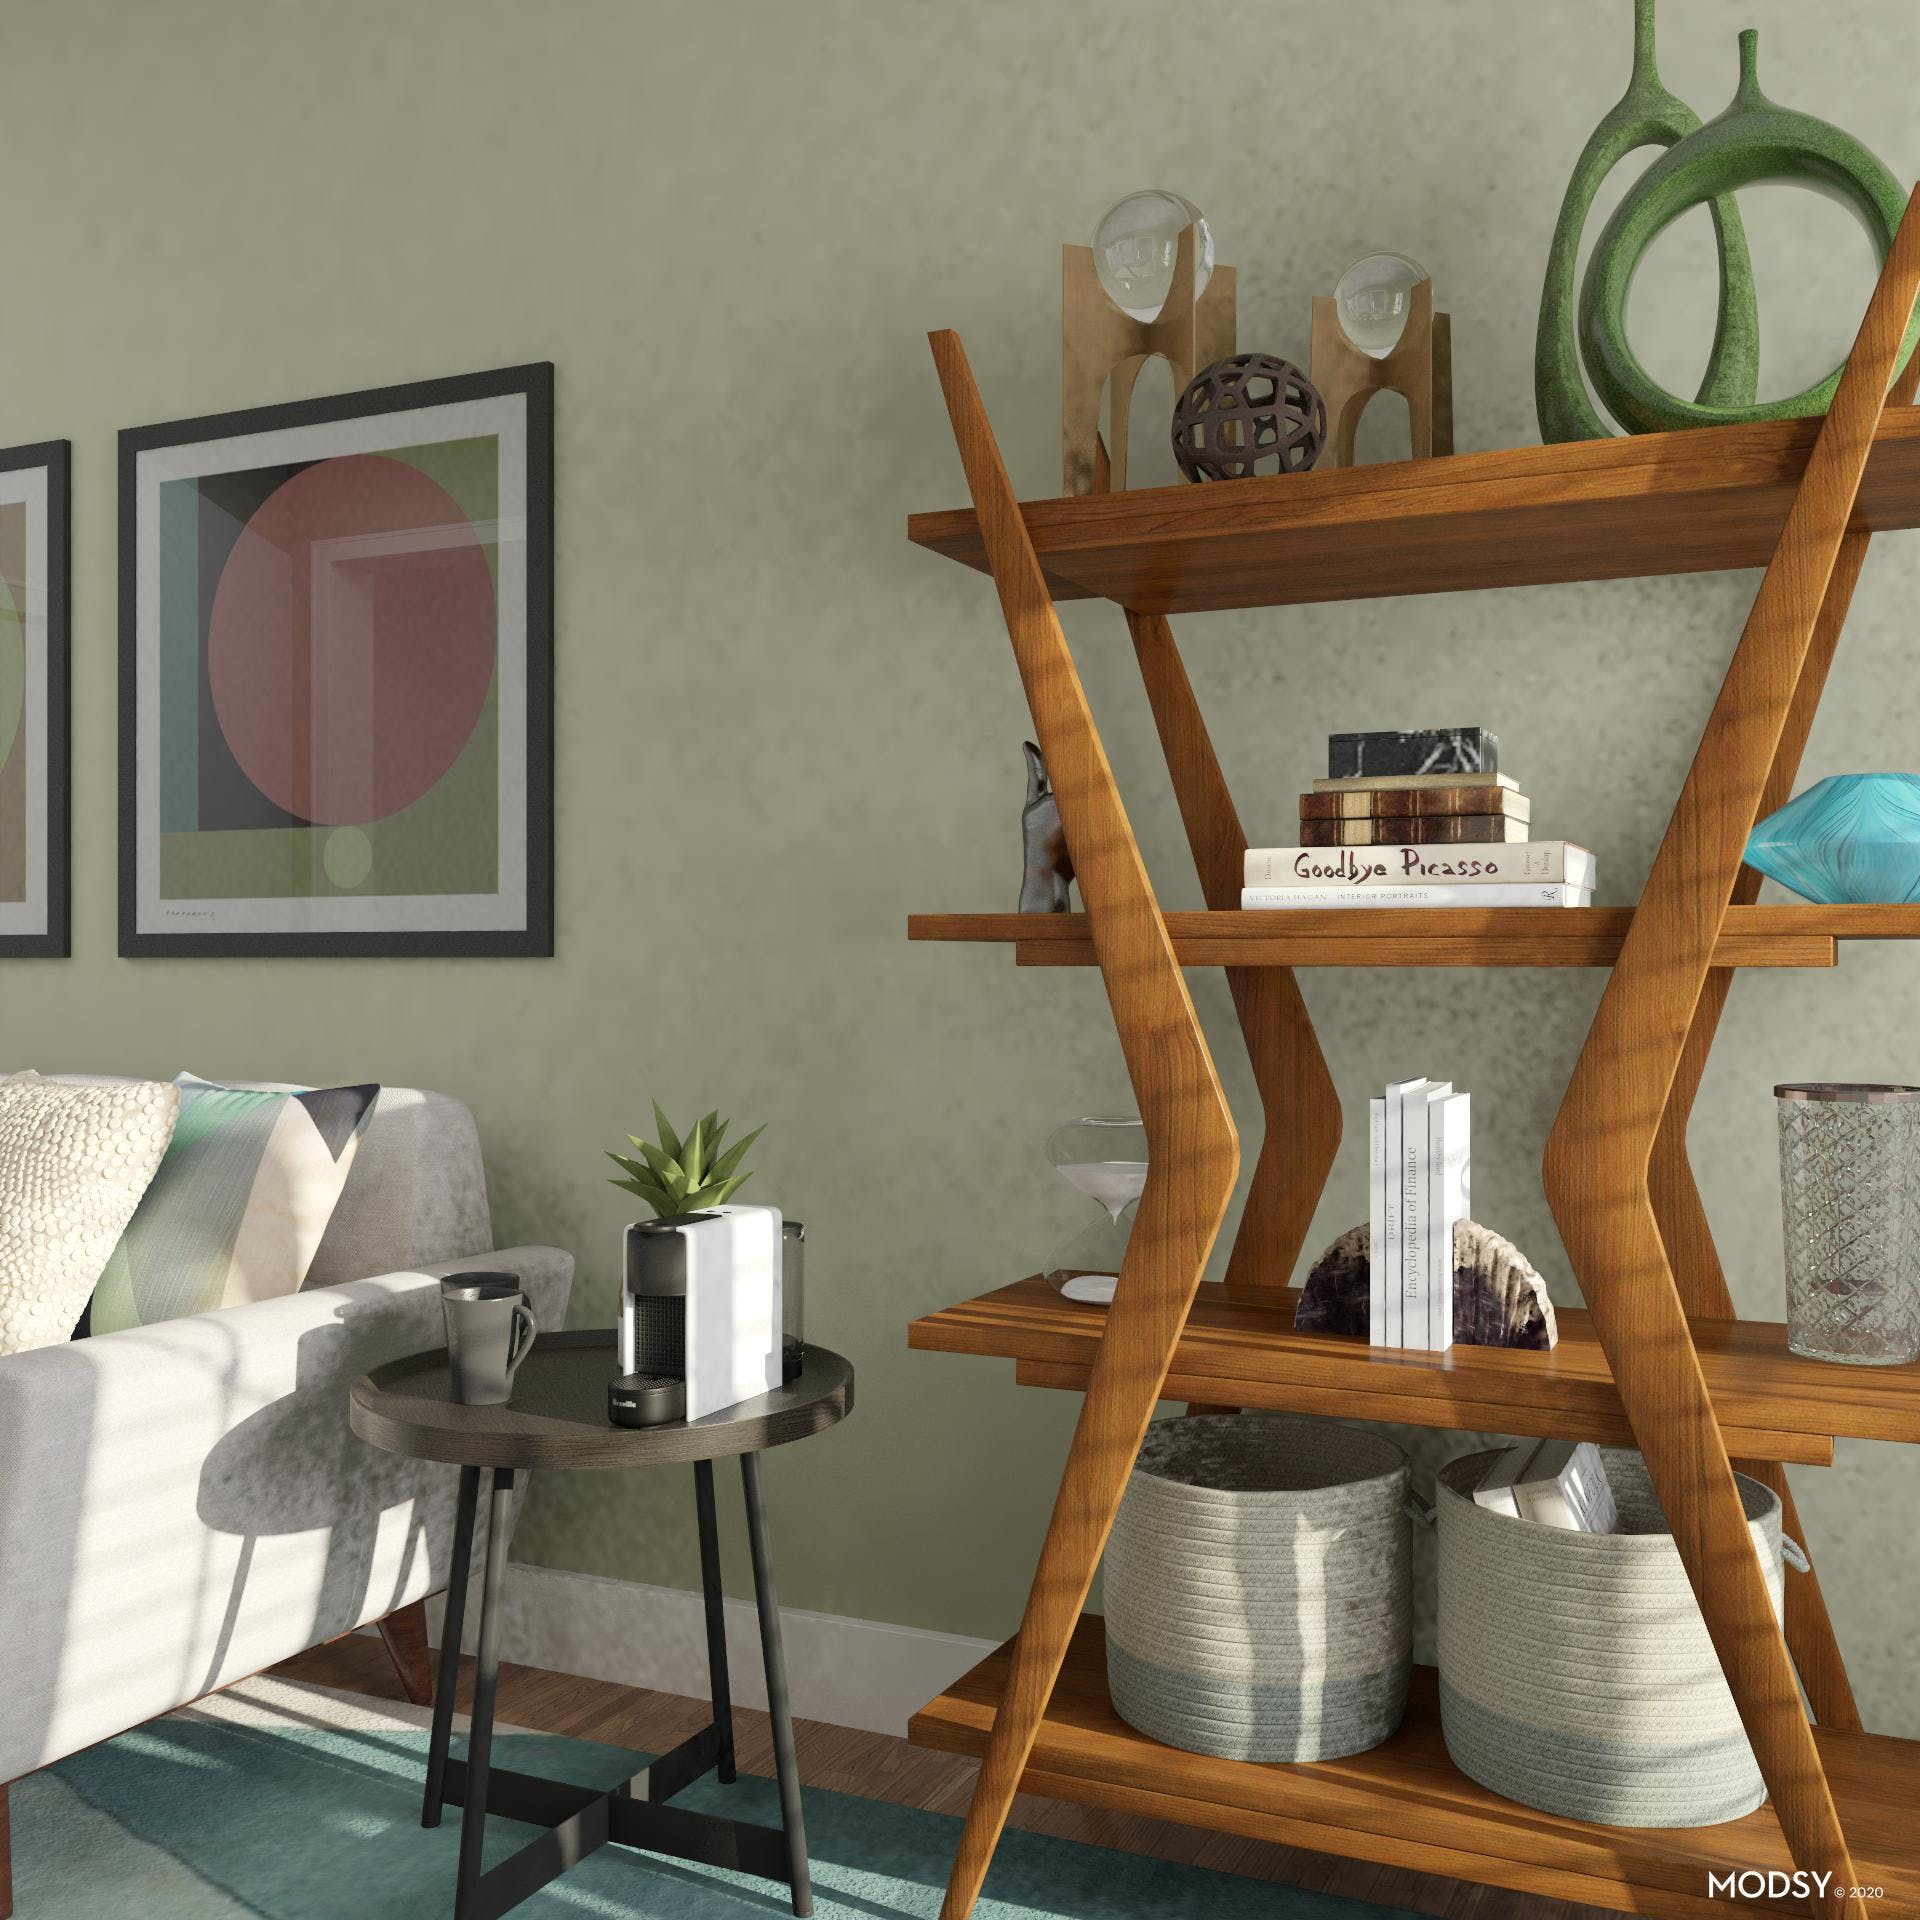 A Place For Things: Office Storage